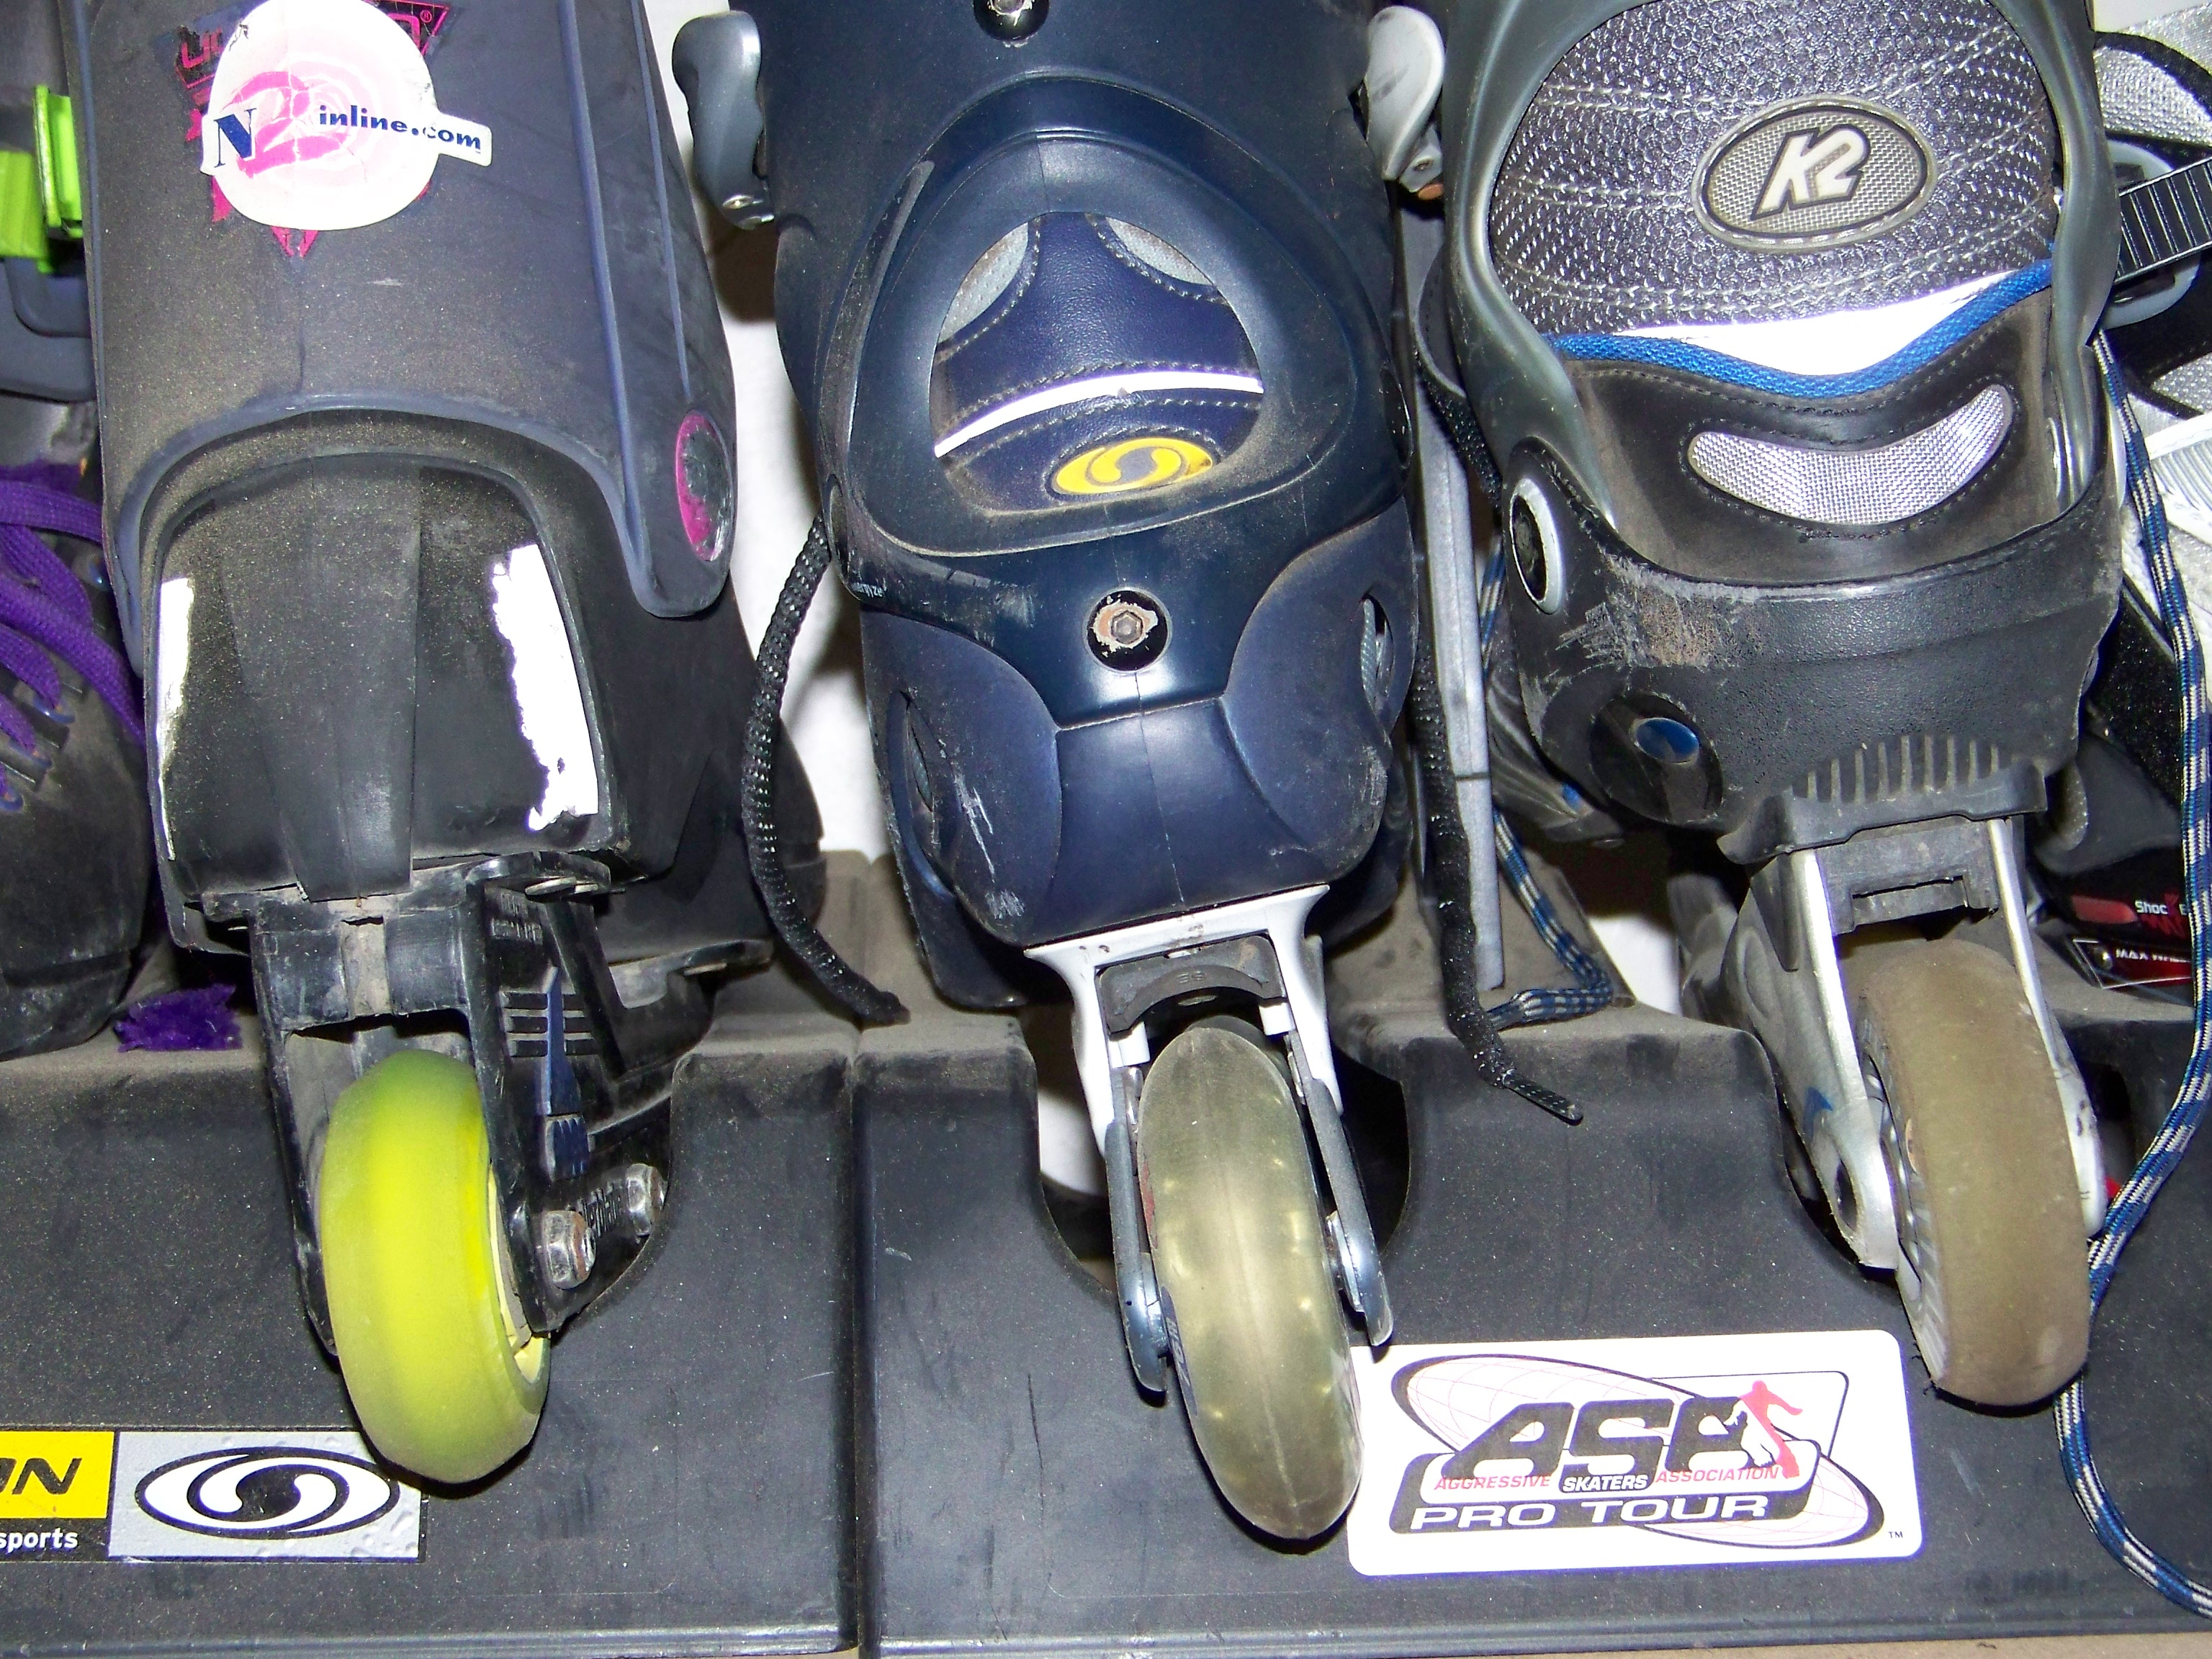 Rear view of Rollerblade, Salomon and K2 left skates showing mounting brackets